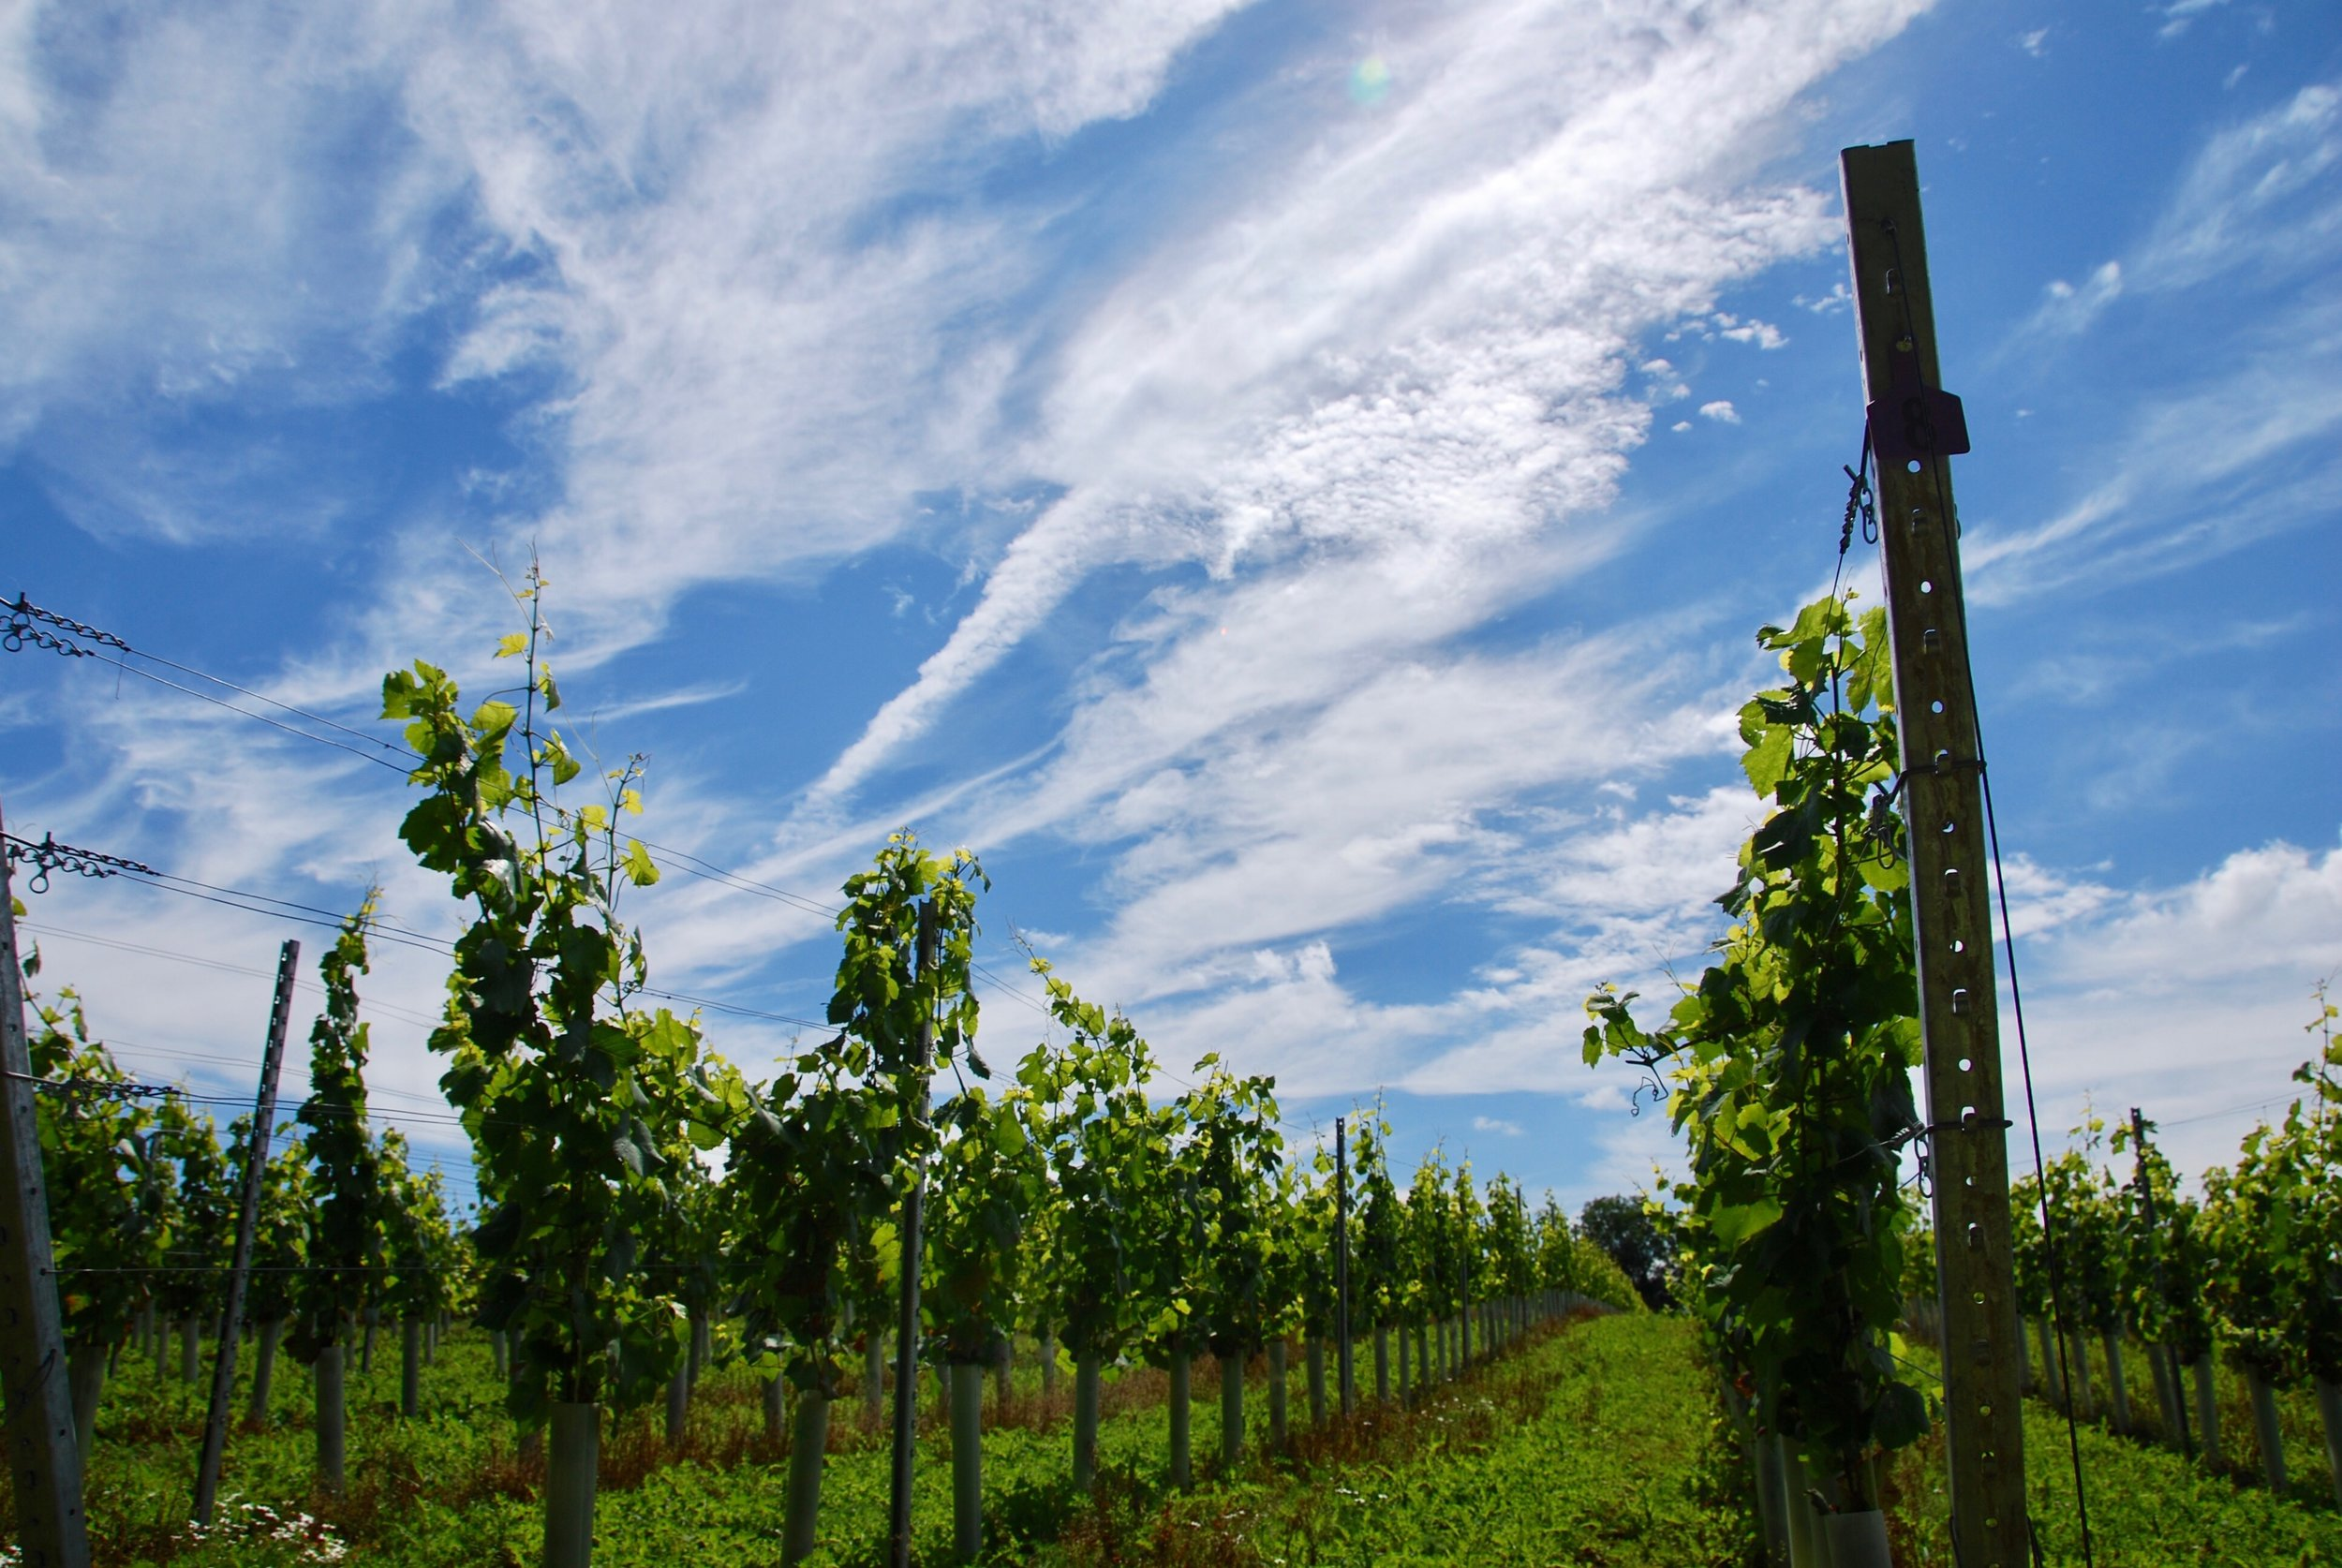 A beautiful summer's day, and the vines are looking very happy and healthy!